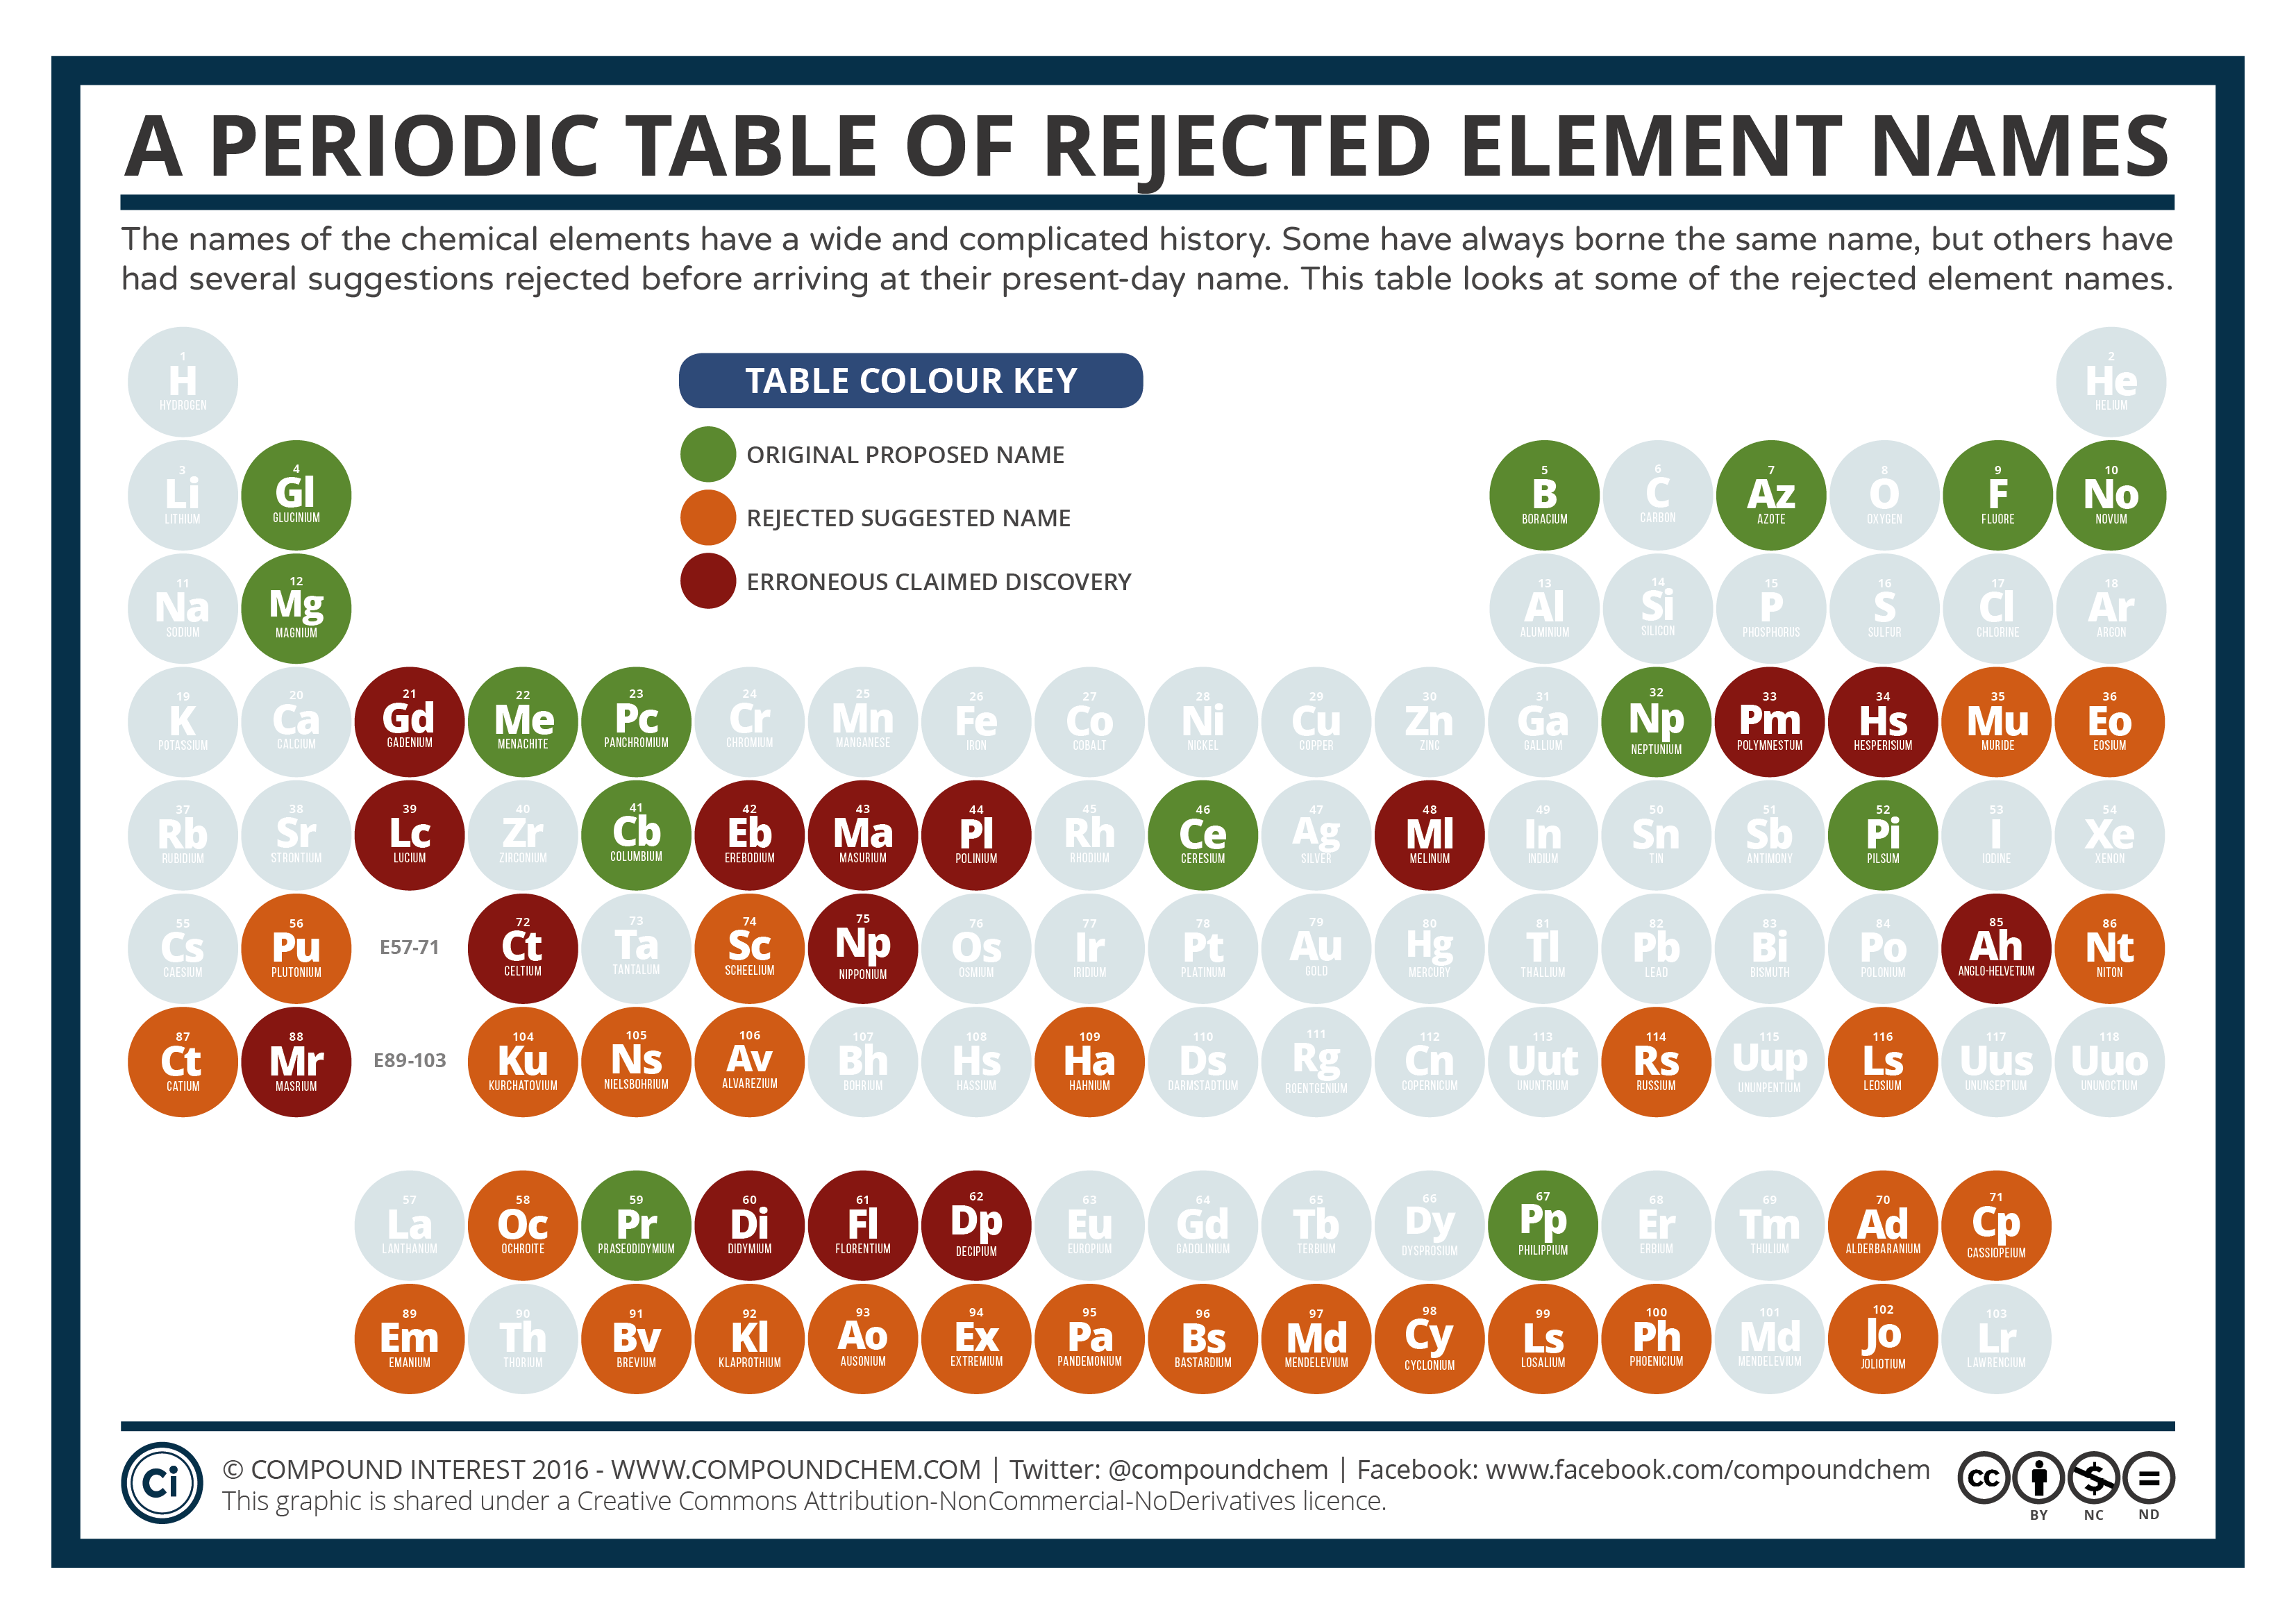 pound Interest A Periodic Table of Rejected Element Names